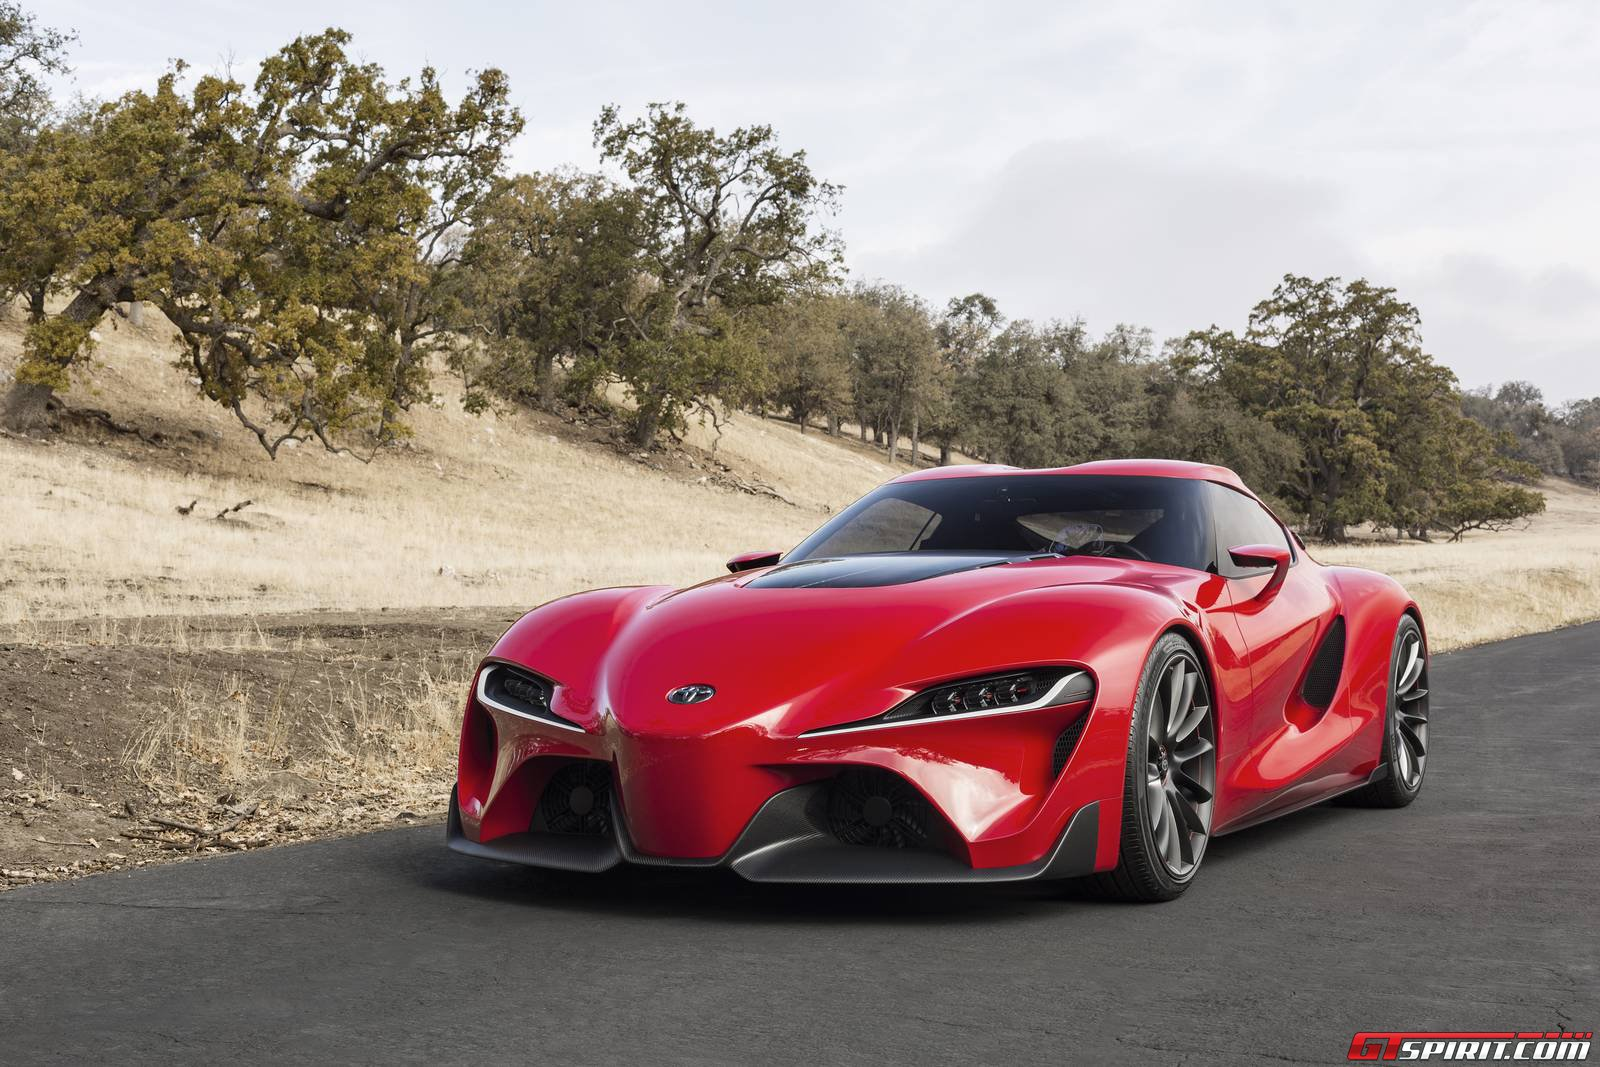 Toyota FT-1 Said to Have Been Confirmed as Next-Gen Toyota Supra ...